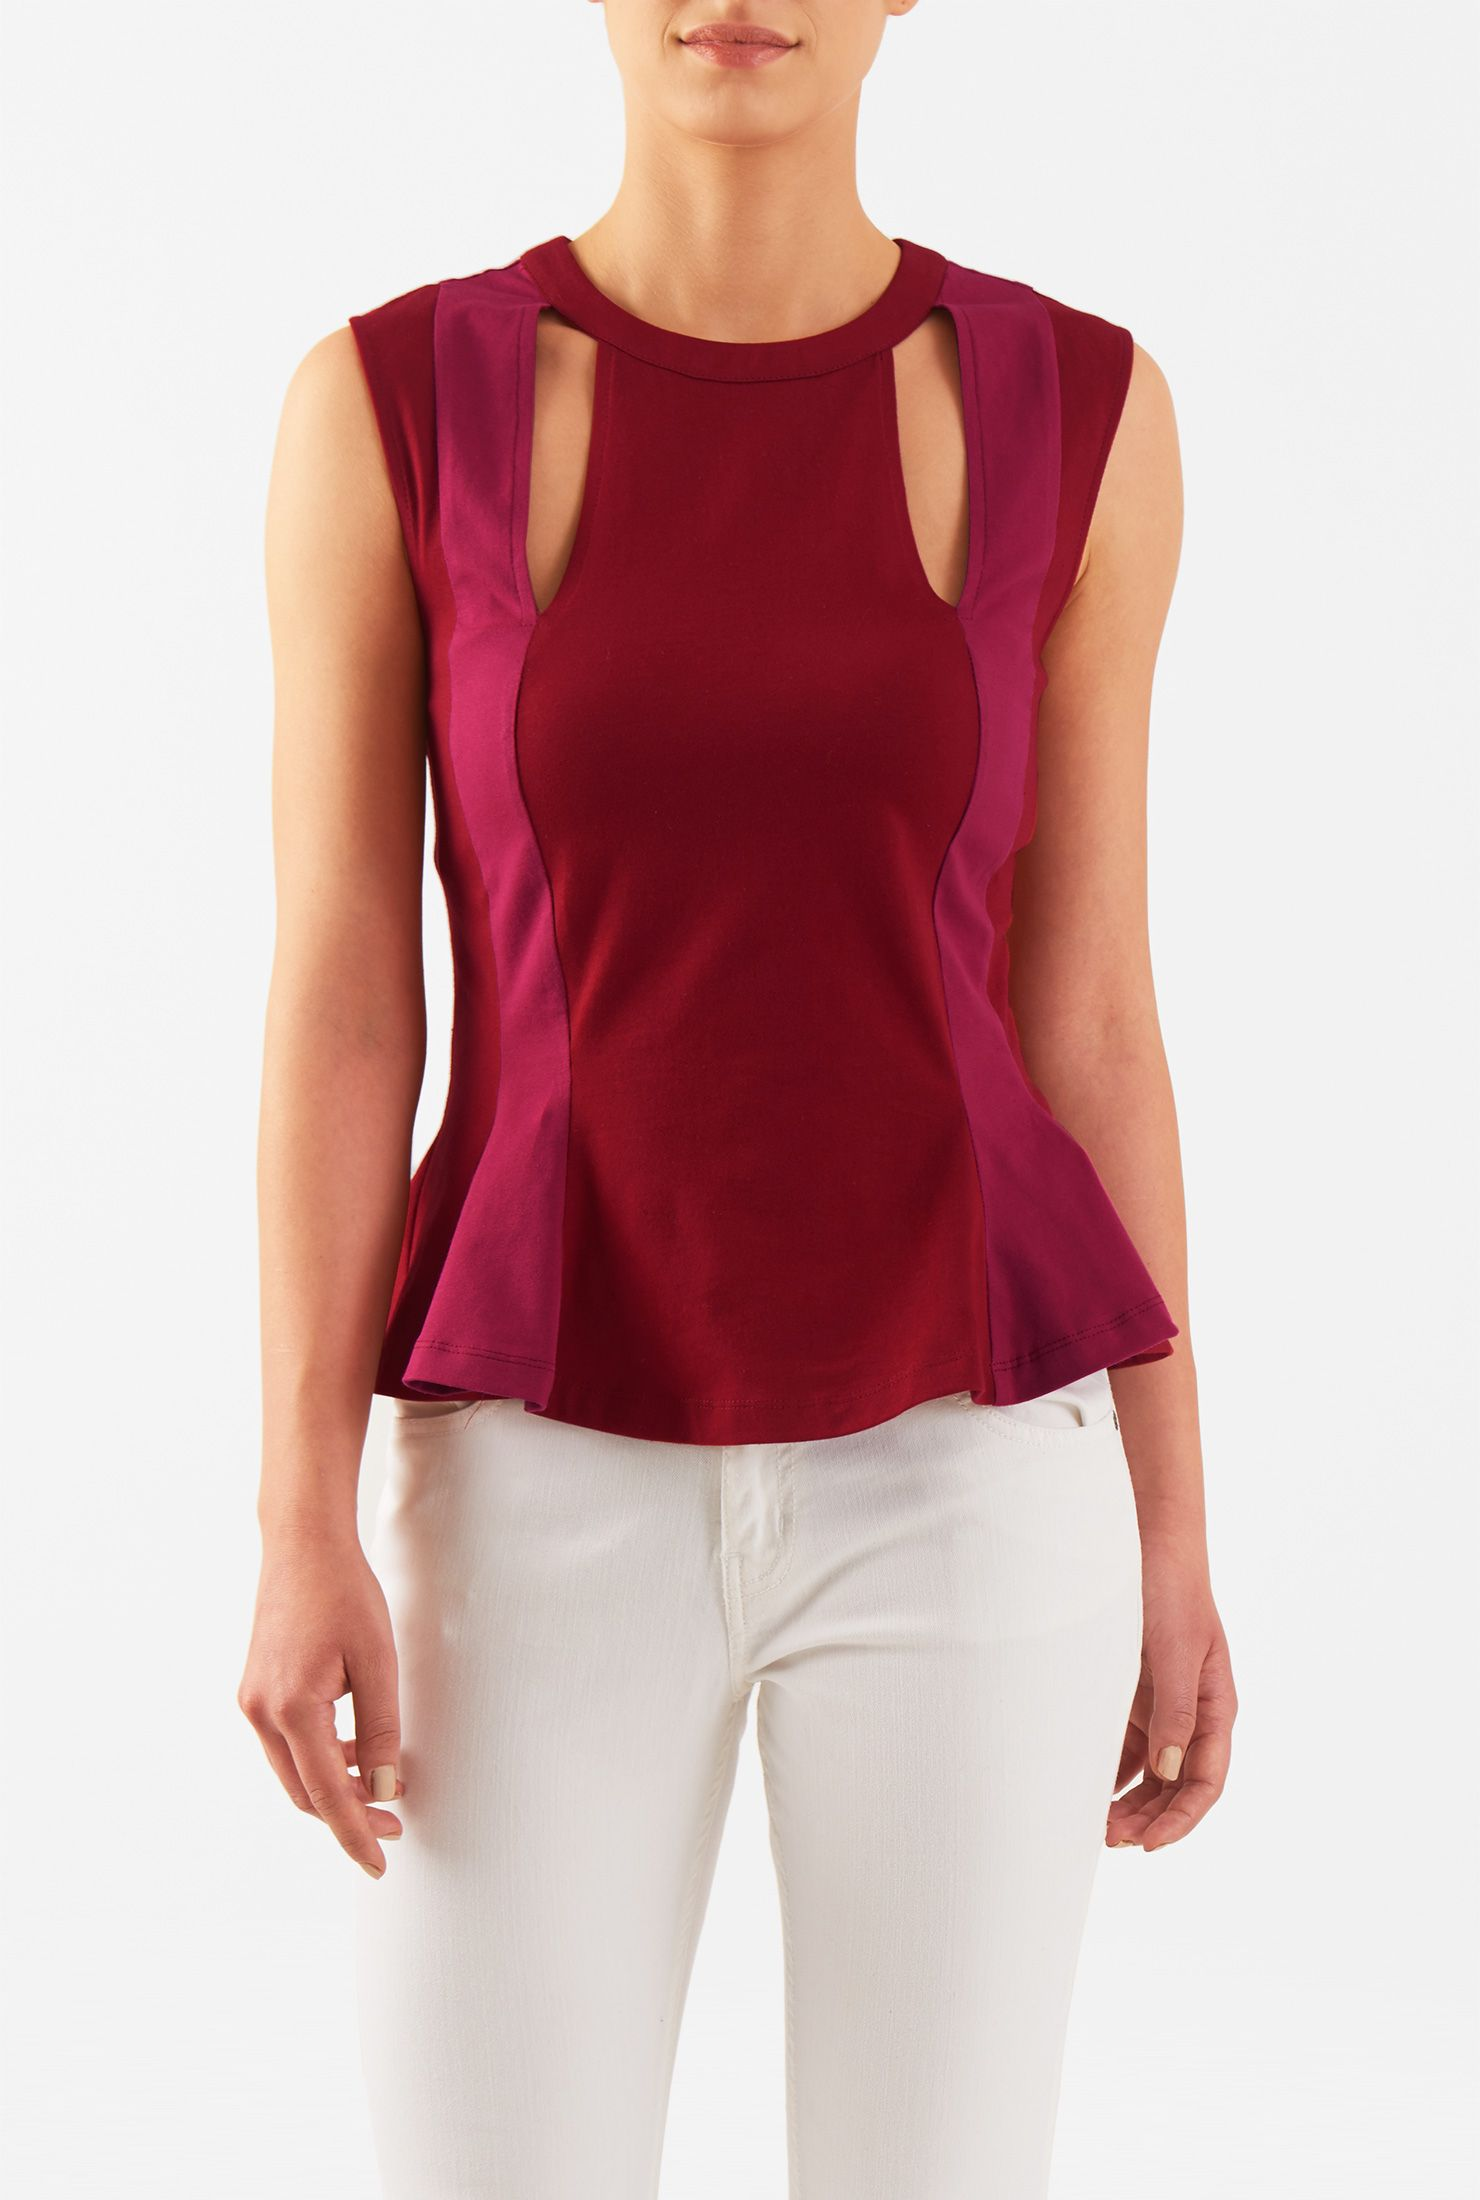 A casual silhouette gets an update with our linear colorblock cotton knit top styled with a banded round neck and flirty keyhole cut-outs below.